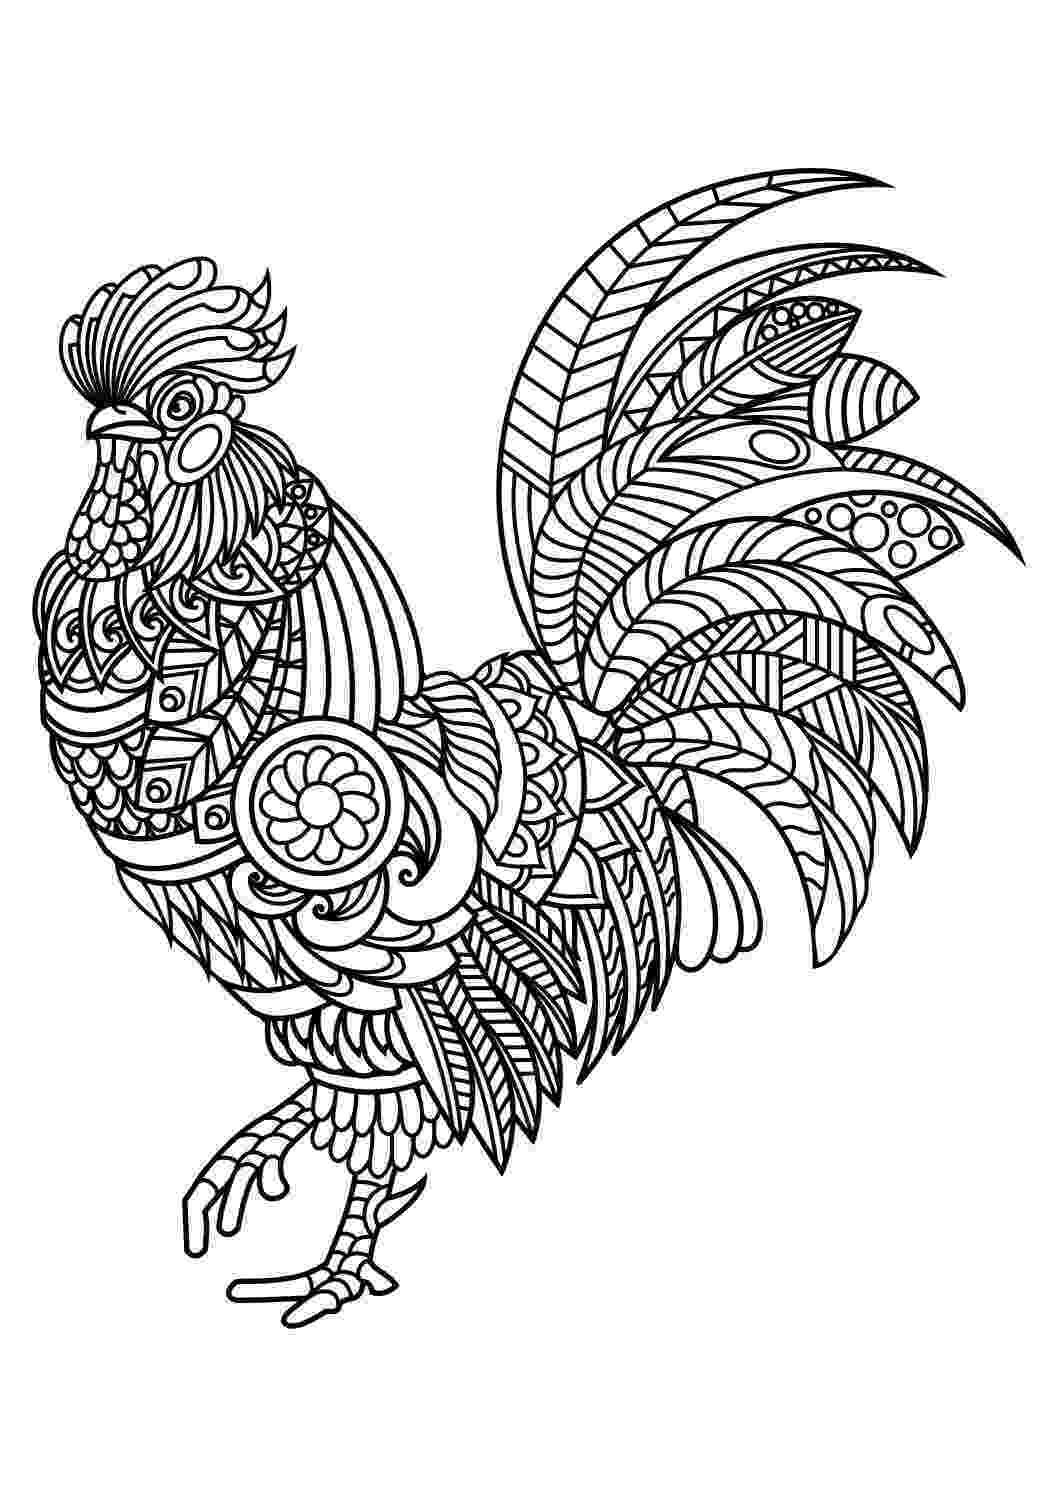 animal colouring pages free animal mandala coloring pages best coloring pages for kids free animal colouring pages